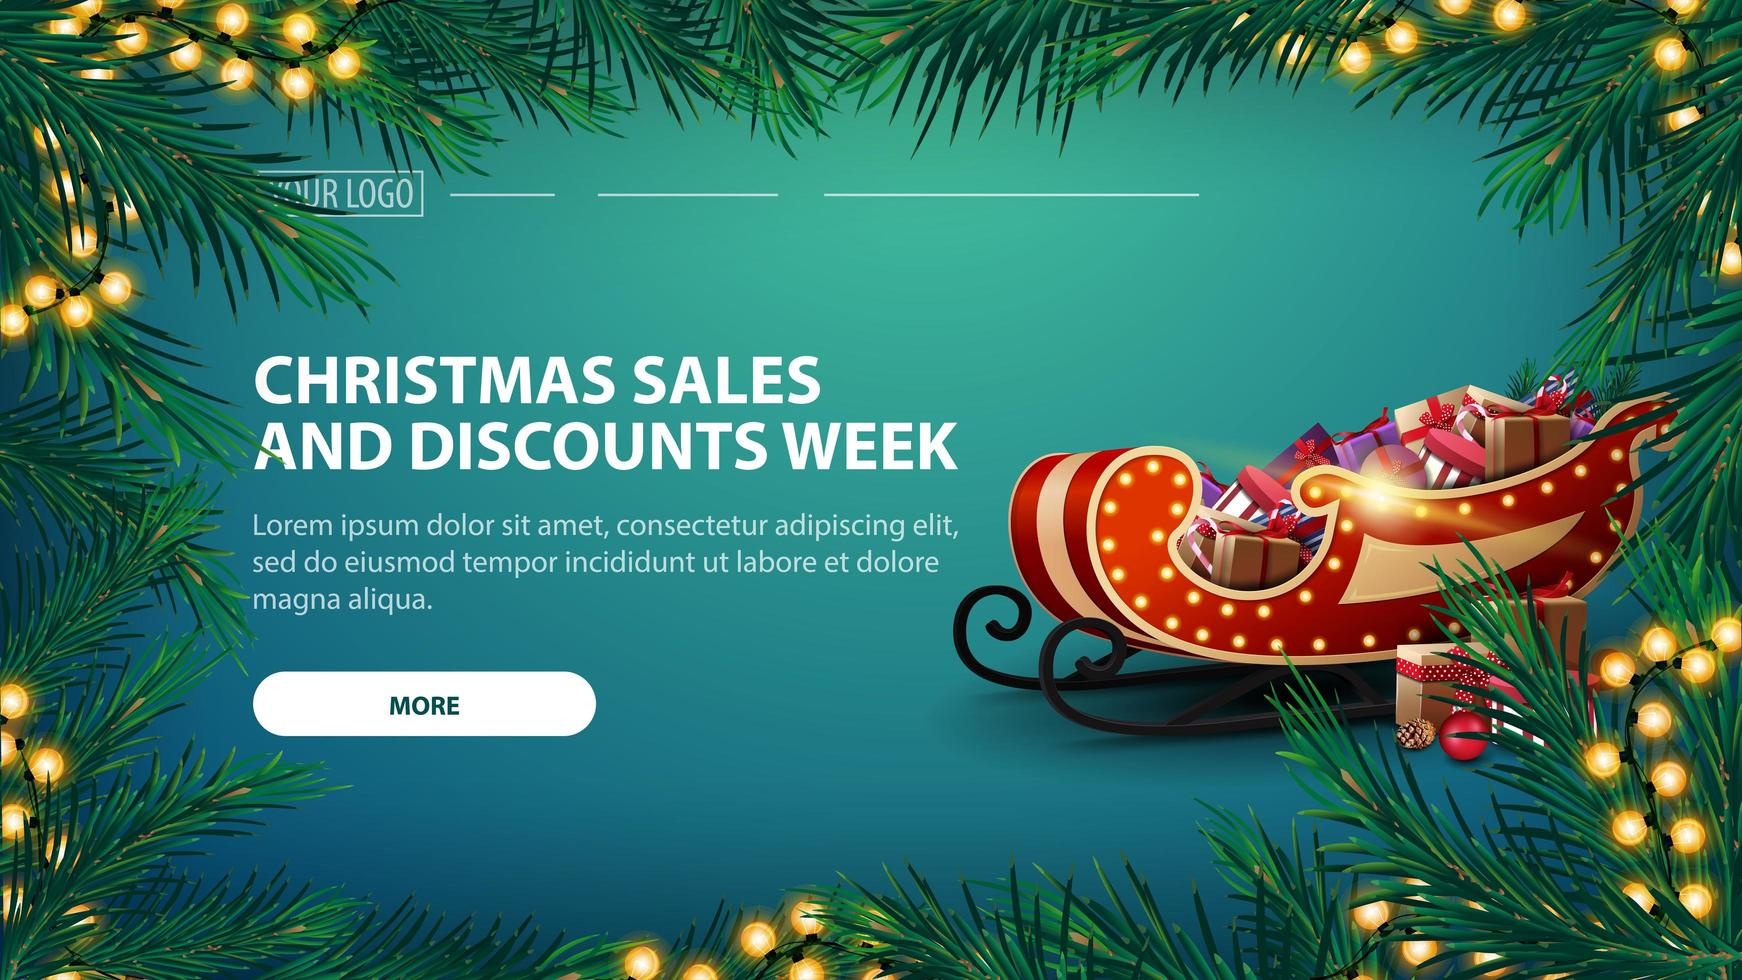 Christmas sales and discount week, green banner with garland of pine branches with yellow garland and Santa Sleigh with presents vector